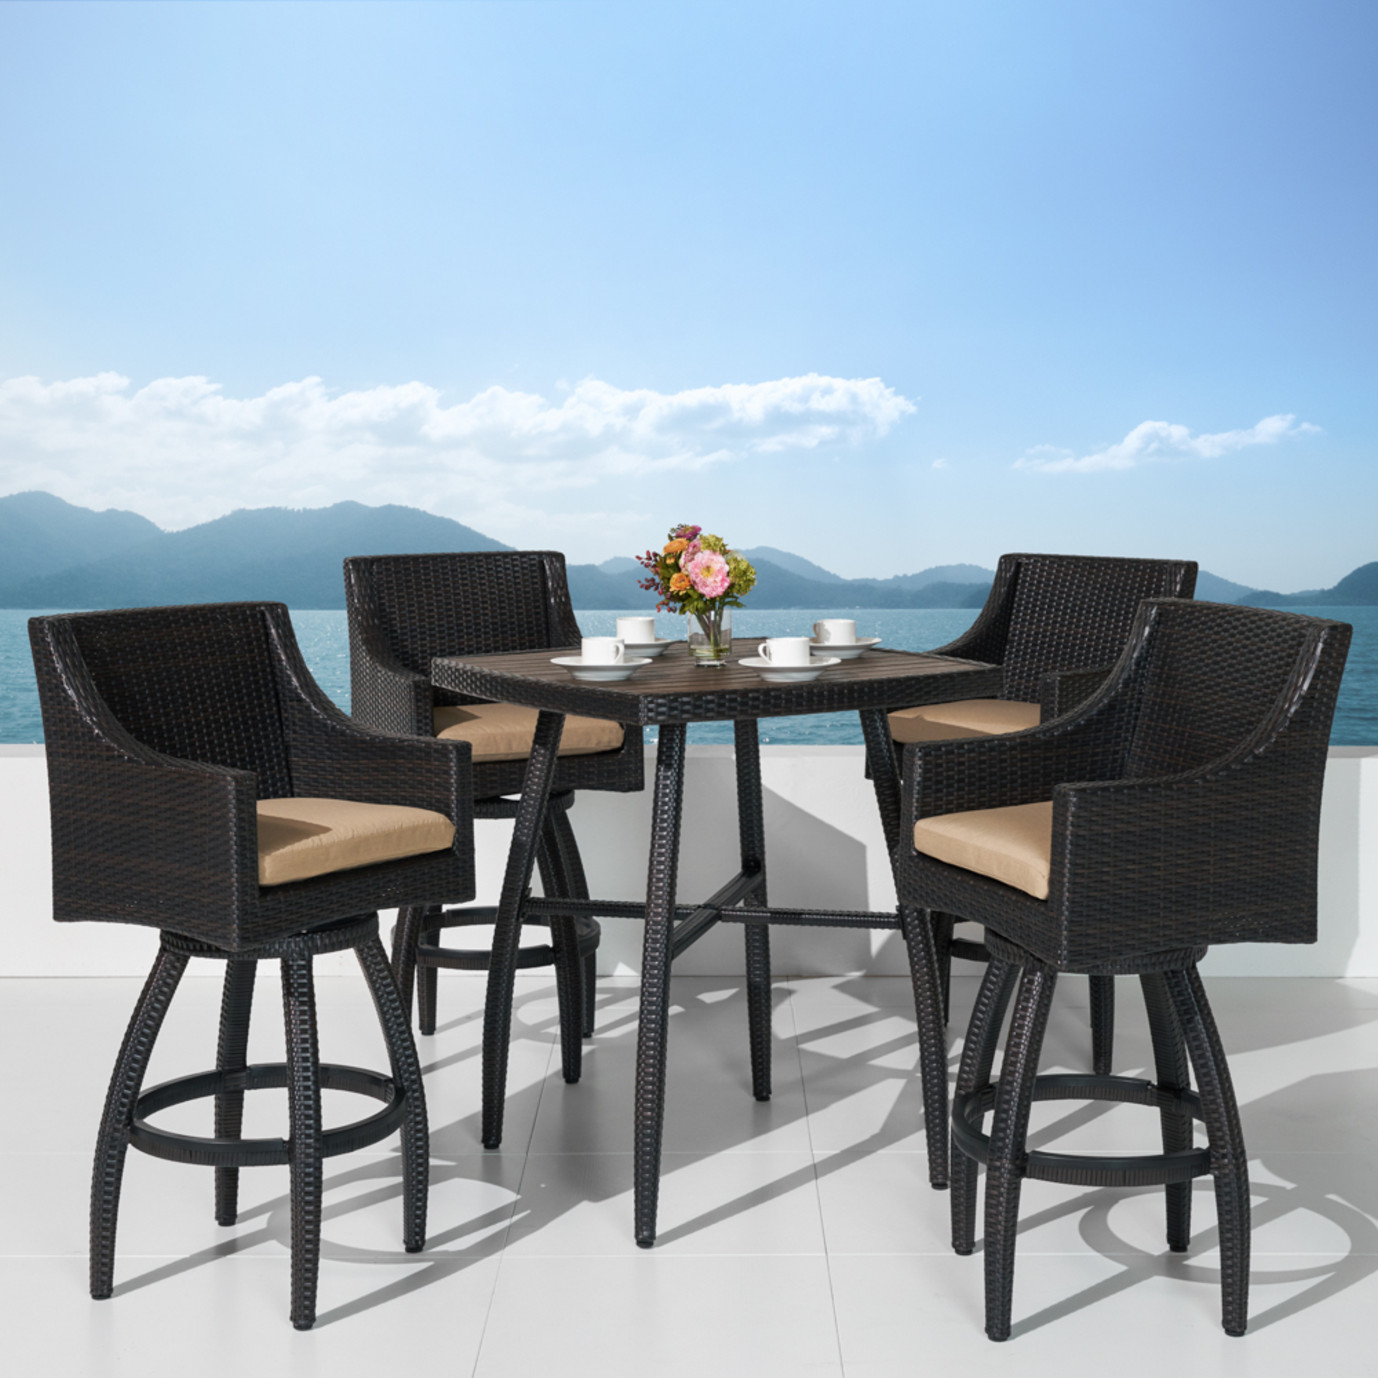 Deco™ 5pc Barstool Set - Maxim Beige